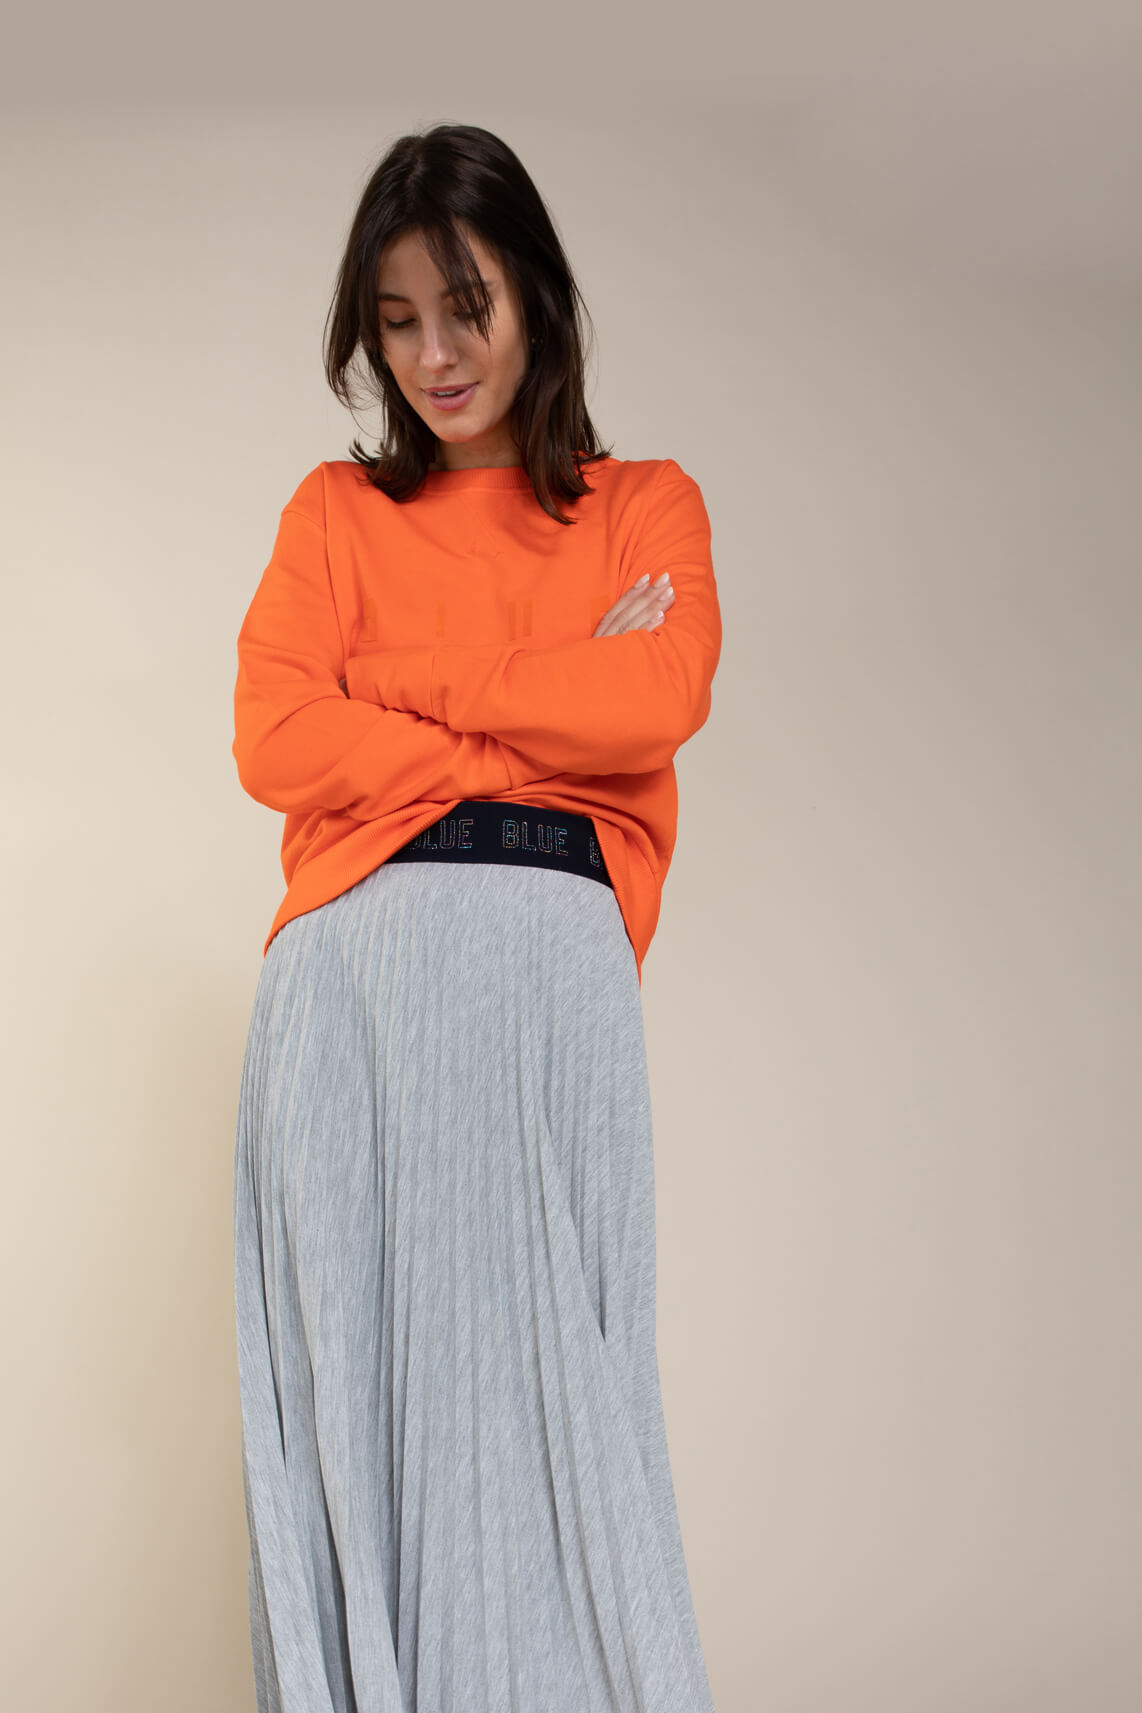 Anna Blue Dames Sweater Blue suits you Oranje